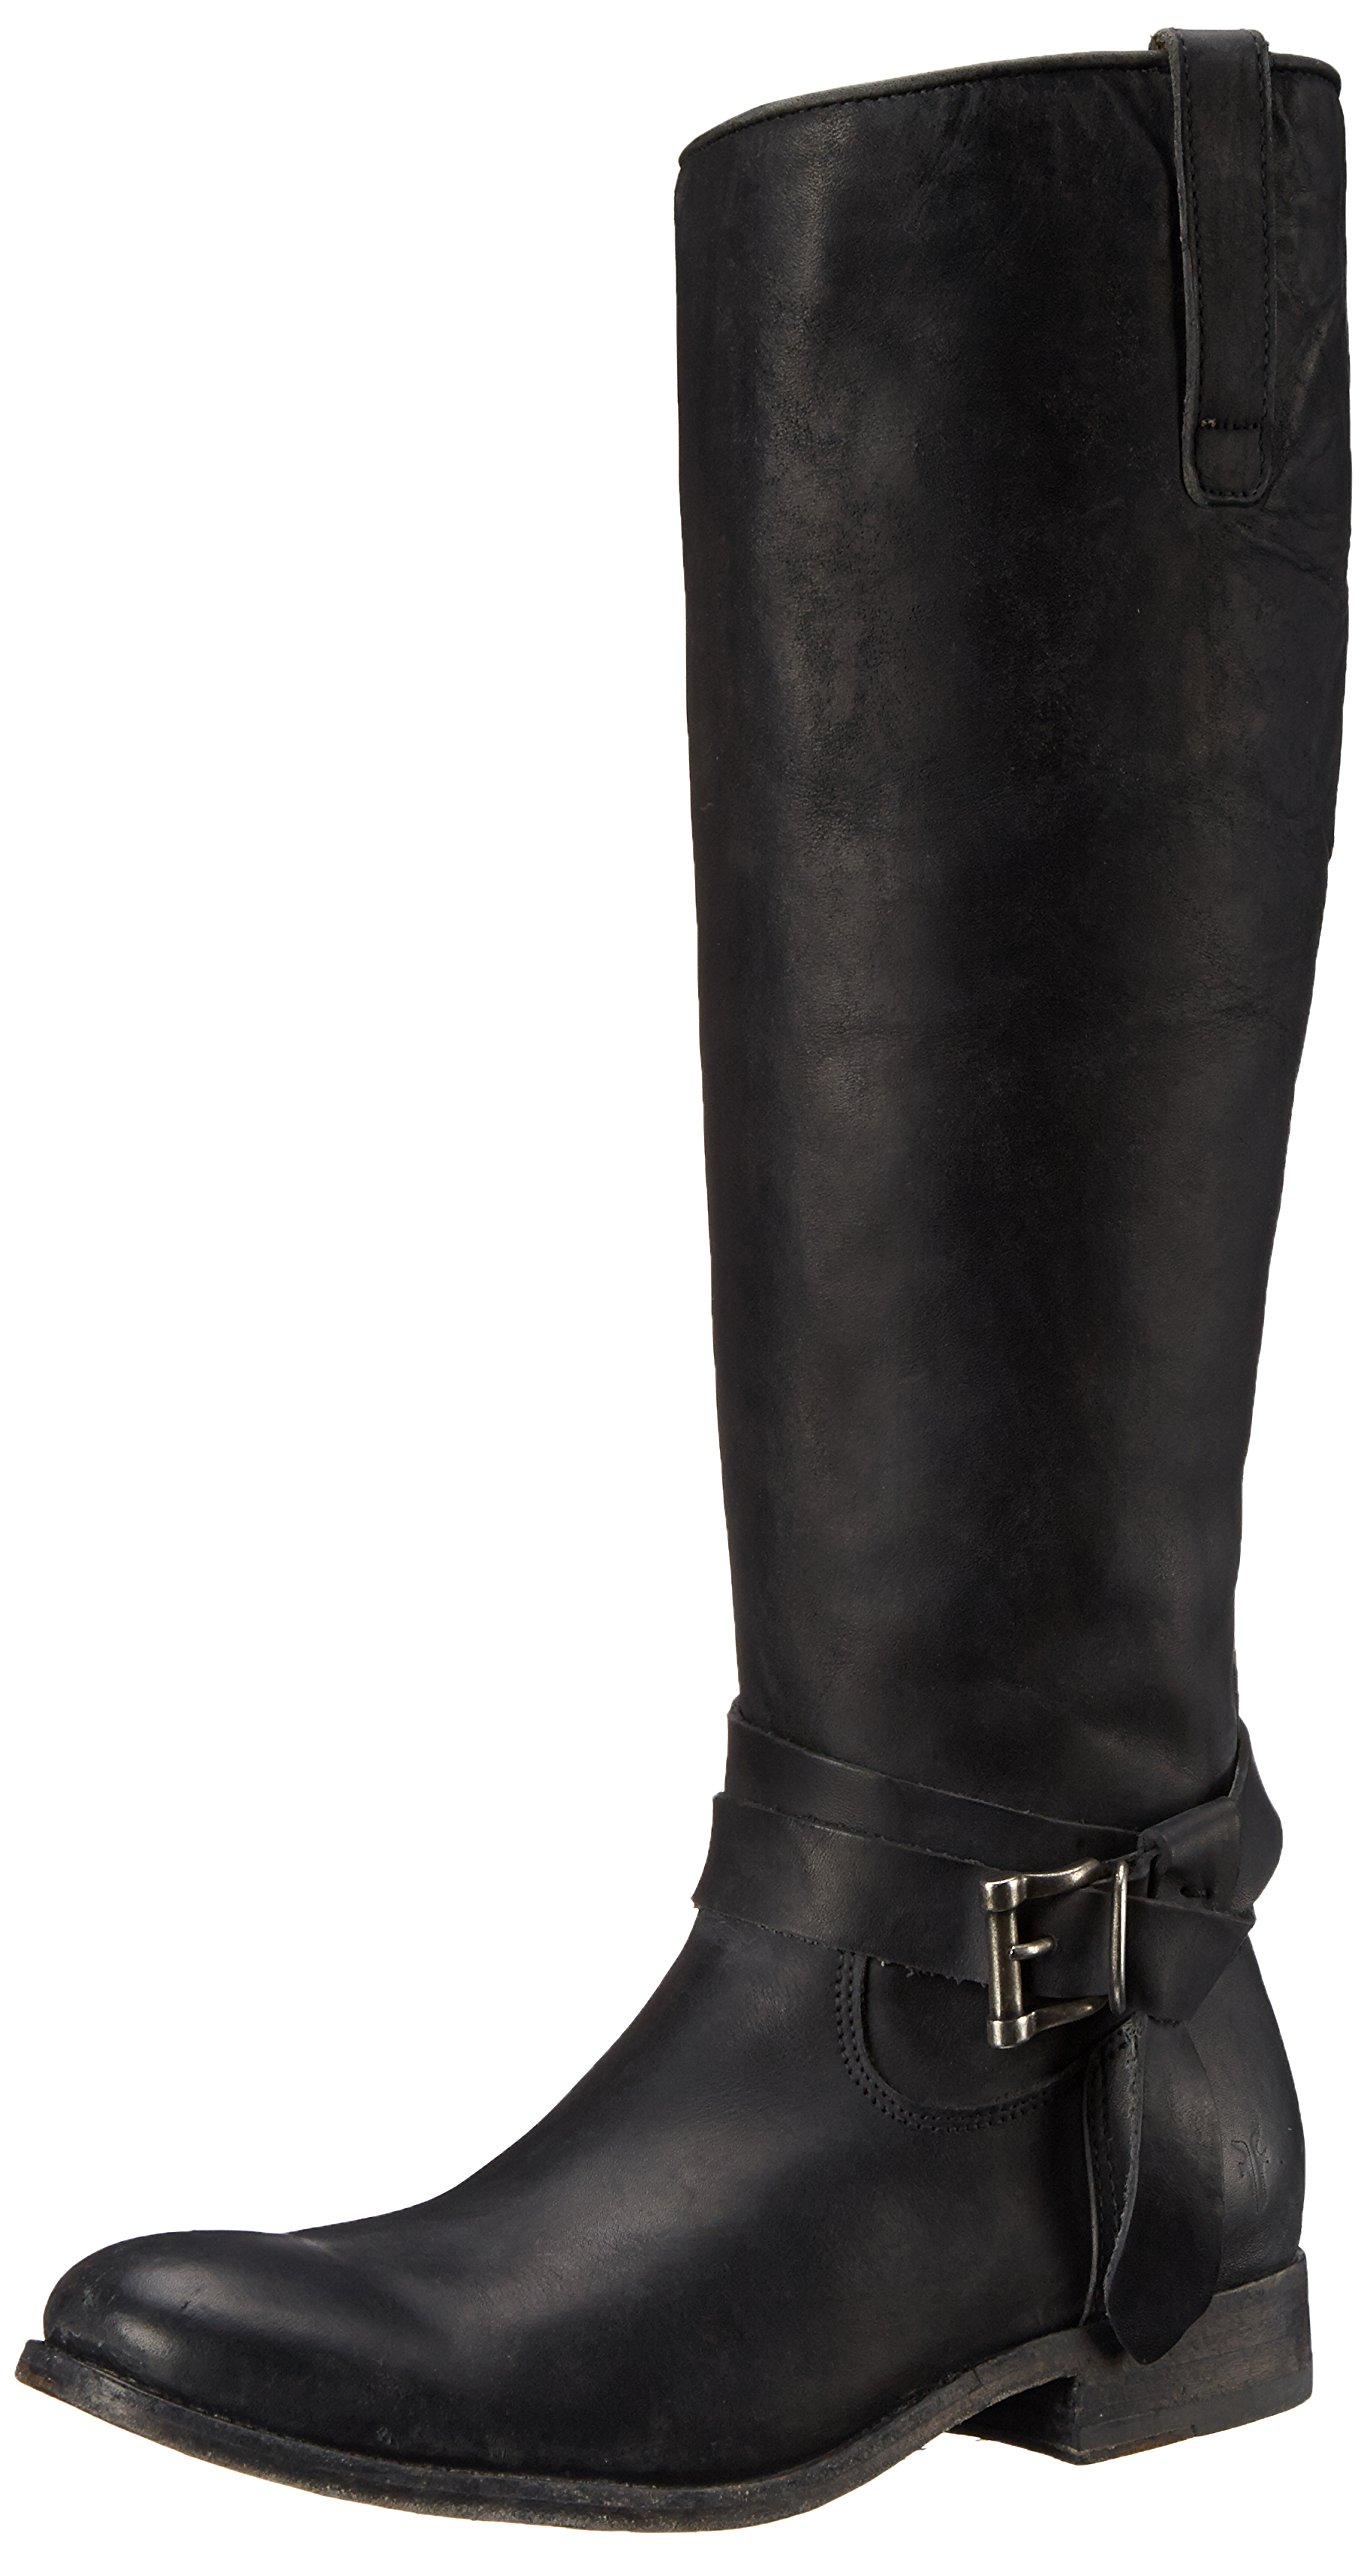 FRYE Women's Melissa Knotted Tall Riding Boot, Black, 8.5 M US